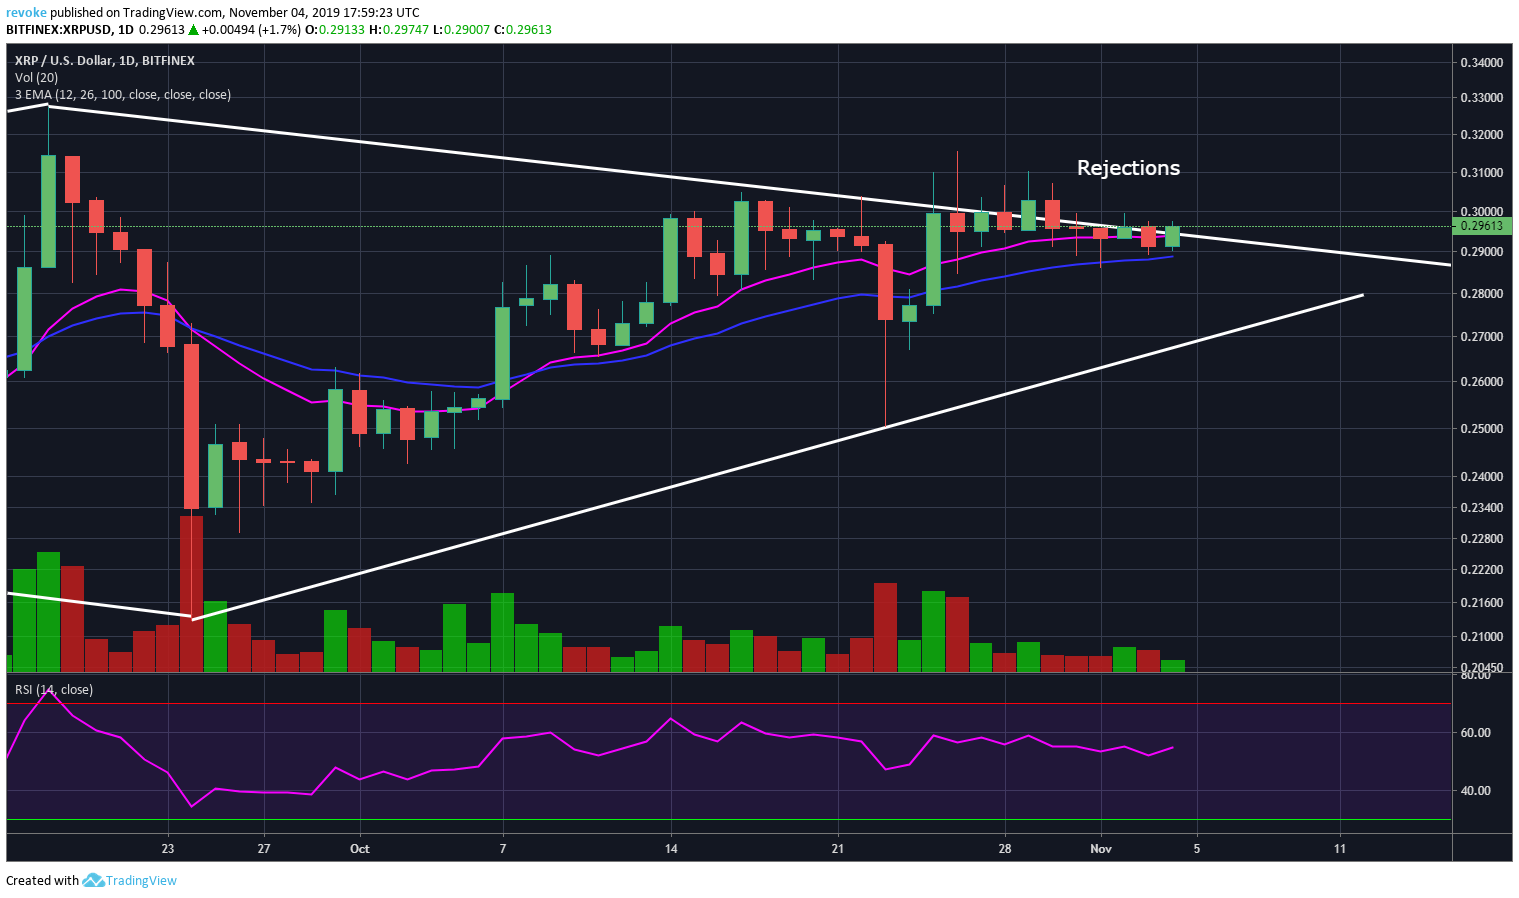 XRP is Having a Hard Time Breaking Above $0.30 and Could Face Bearish Pressure